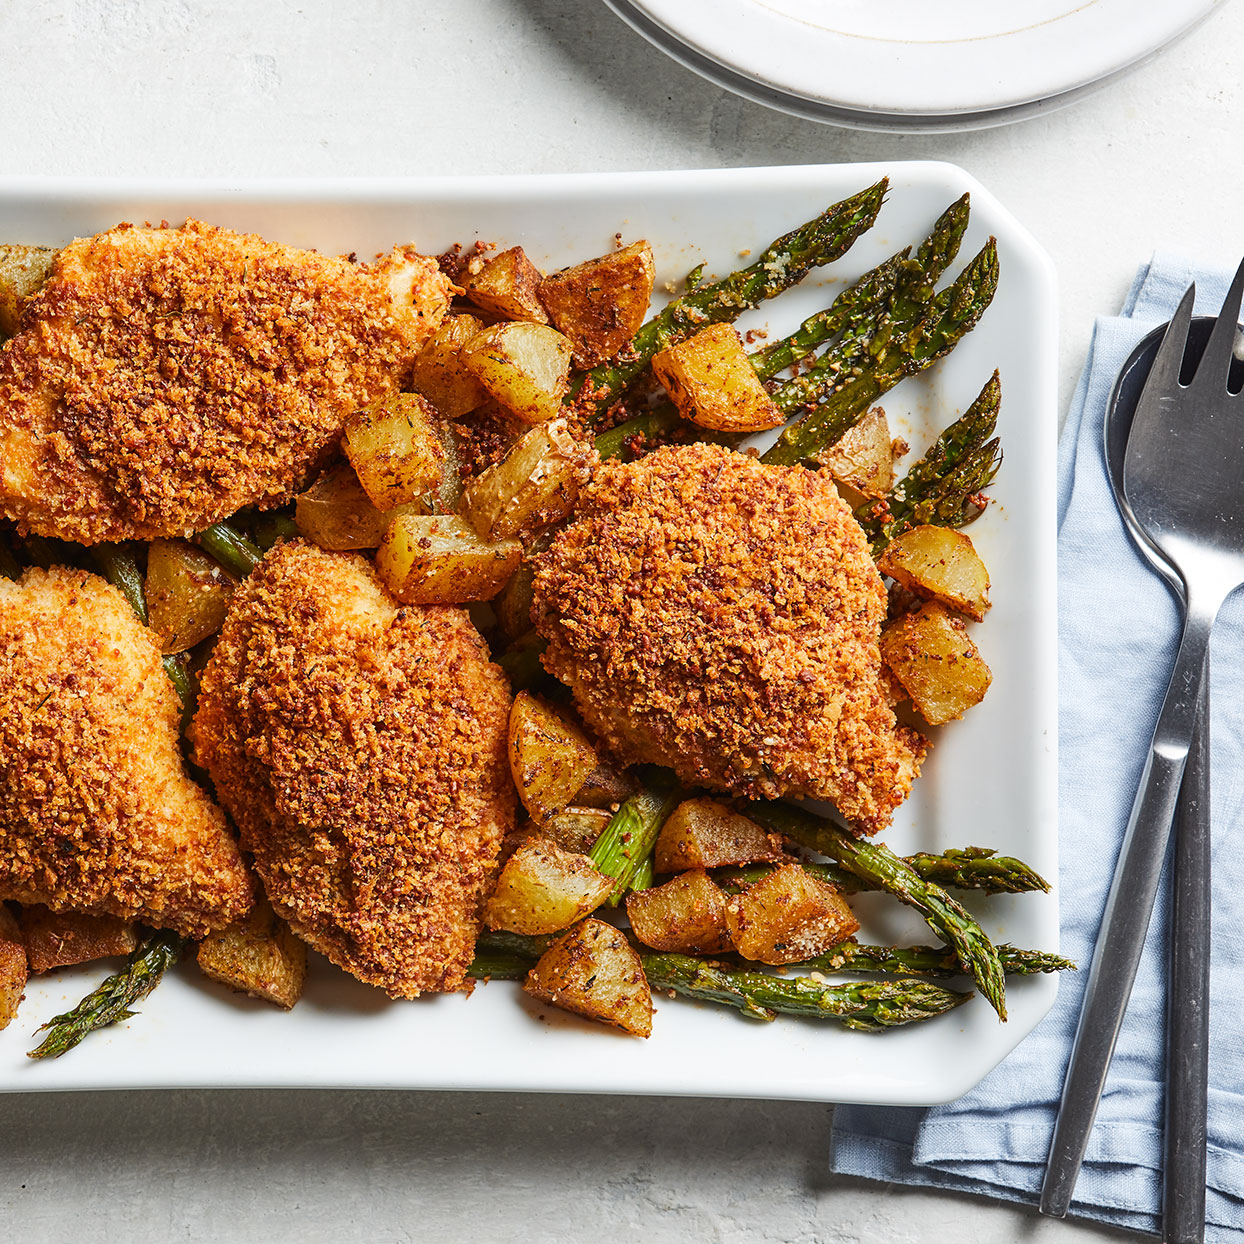 This one-pan dinner combines savory Parmesan cheese and panko-coated chicken breast with asparagus and potatoes tossed with spices to create an easy meal the whole family will love. Source: EatingWell.com, August 2020